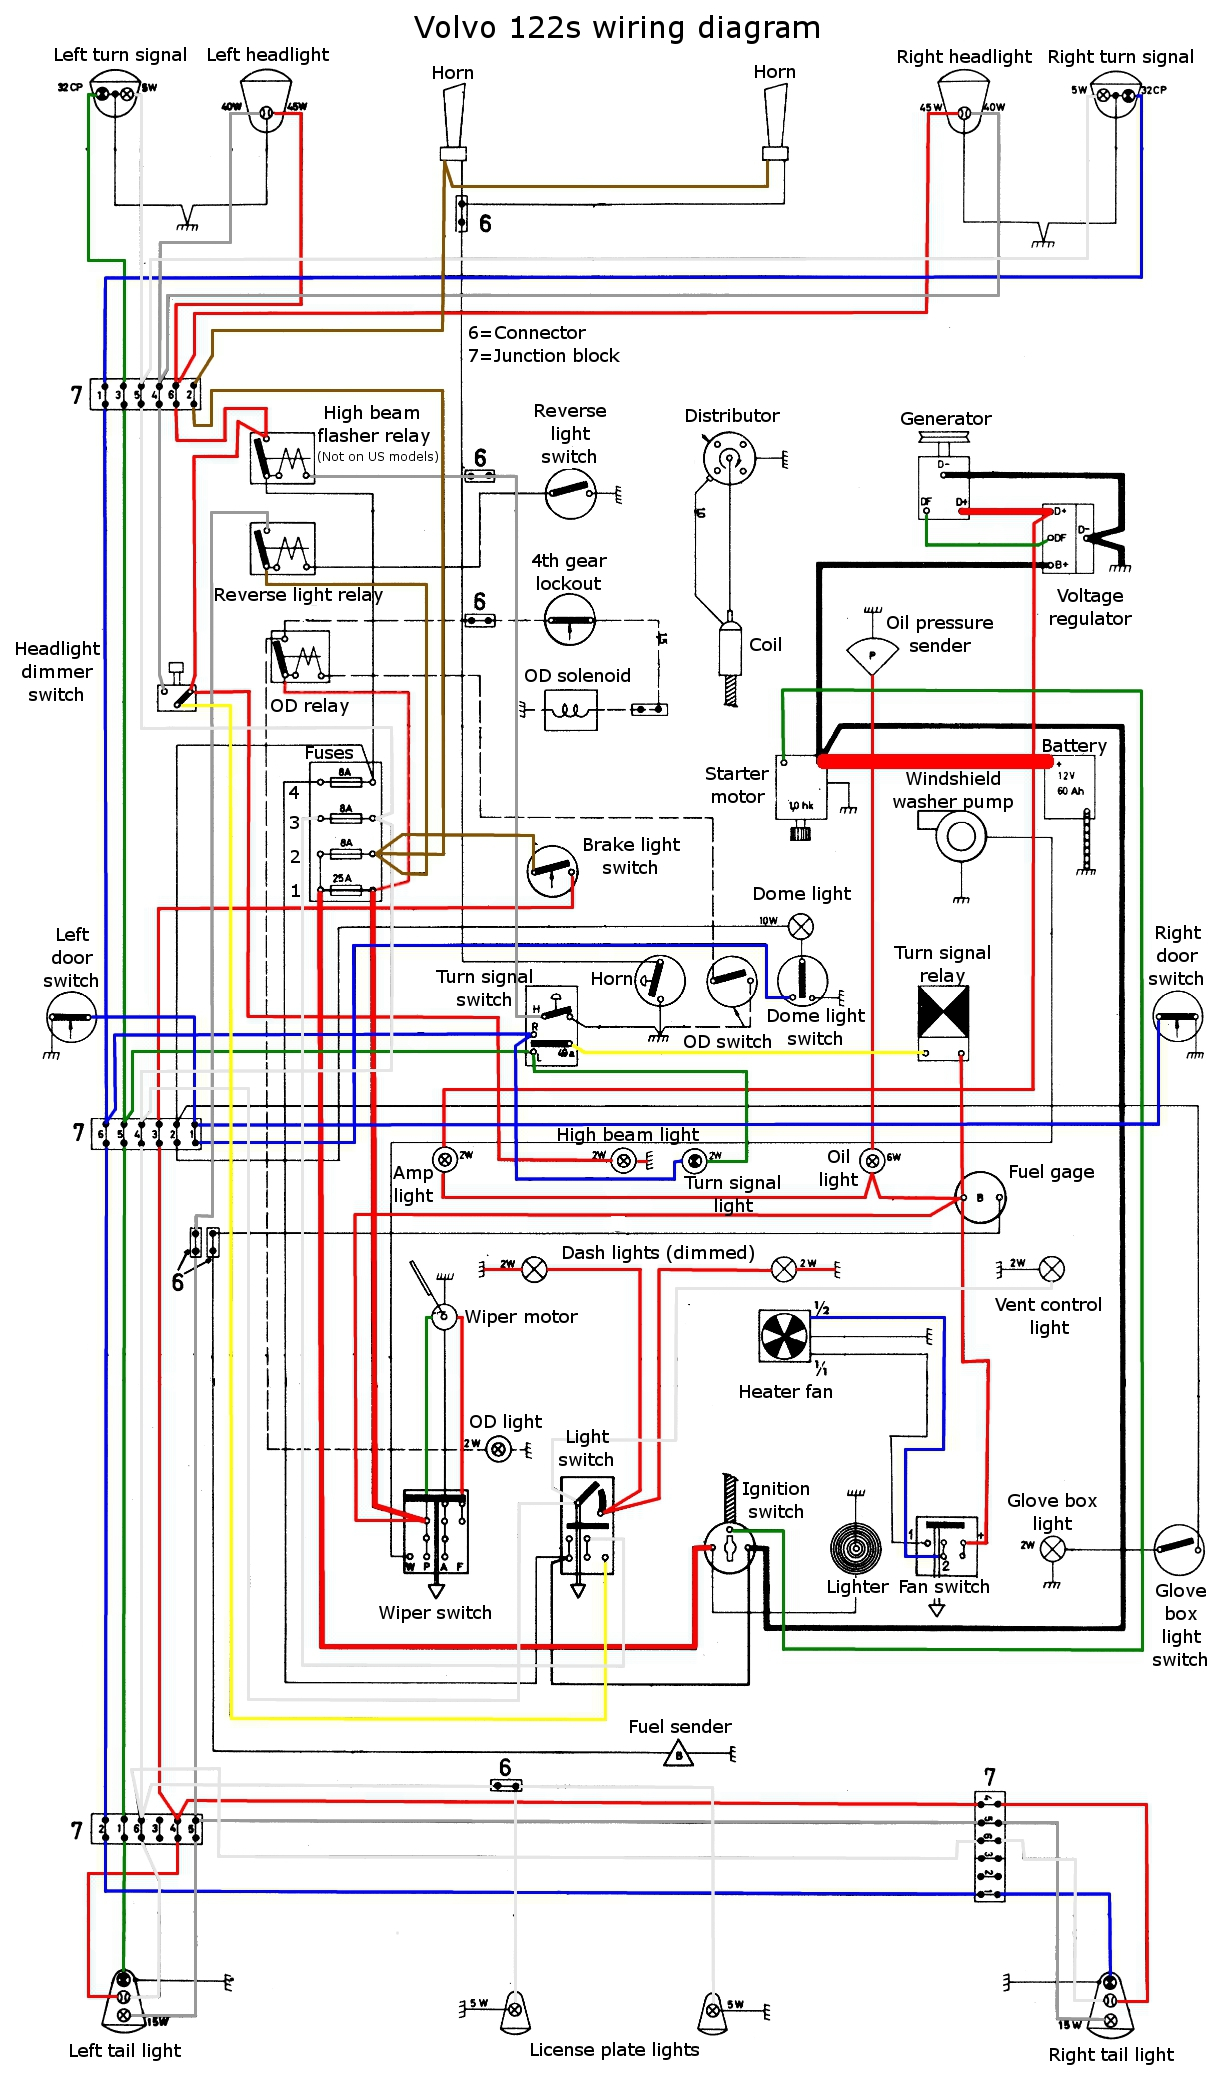 122 wiring diagram color wiring gremlins true t 49 wiring diagram at readyjetset.co